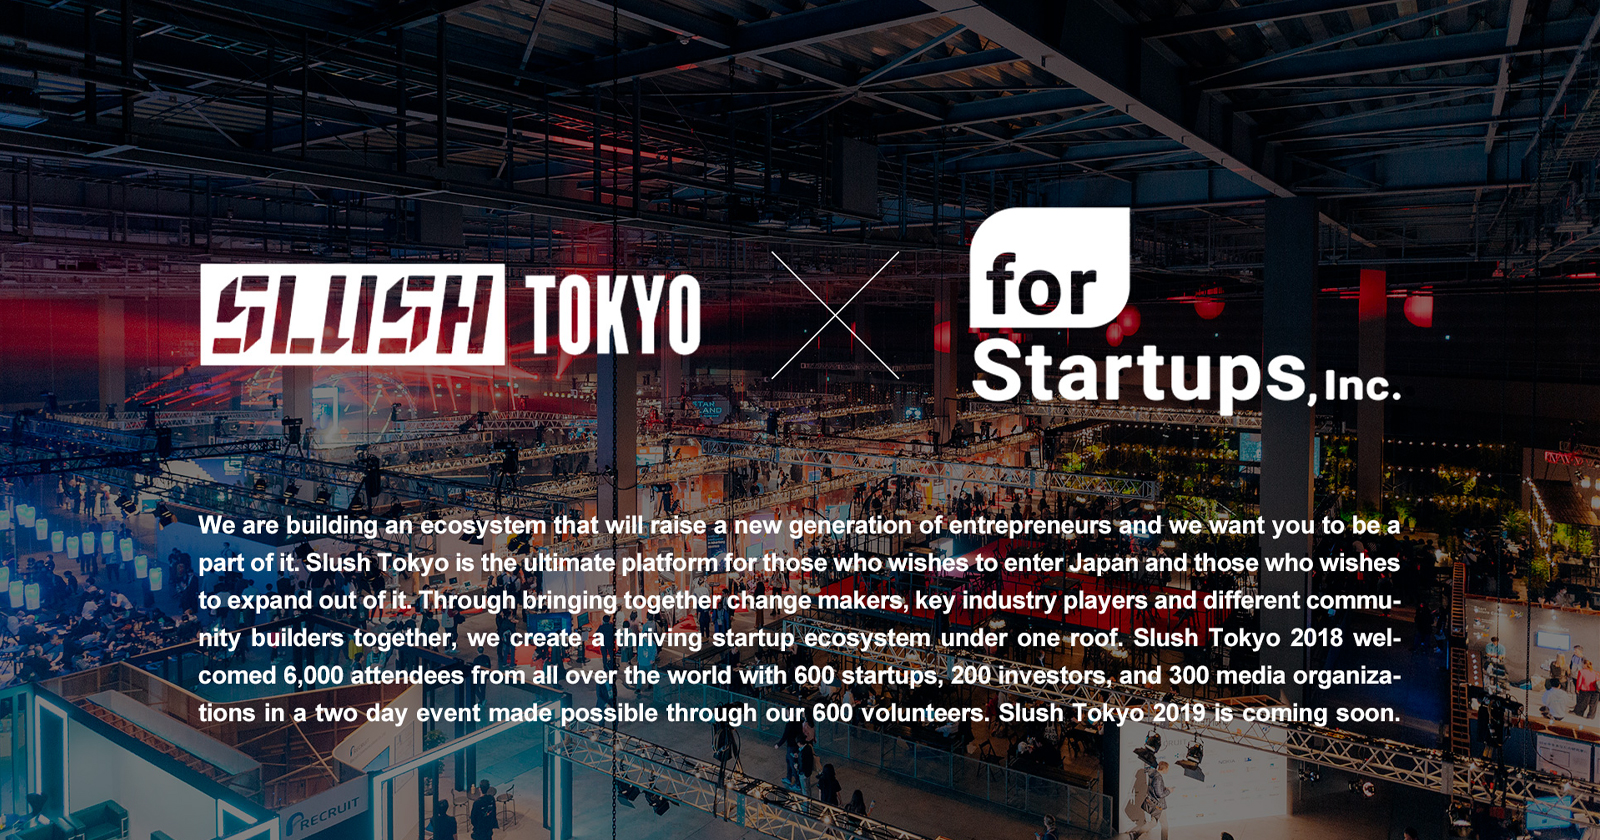 for Startups, inc. and Slush Tokyo: A driving force in the startup ecosystem at Japan's world-class startup-tech conference -- Slush Tokyo 2019